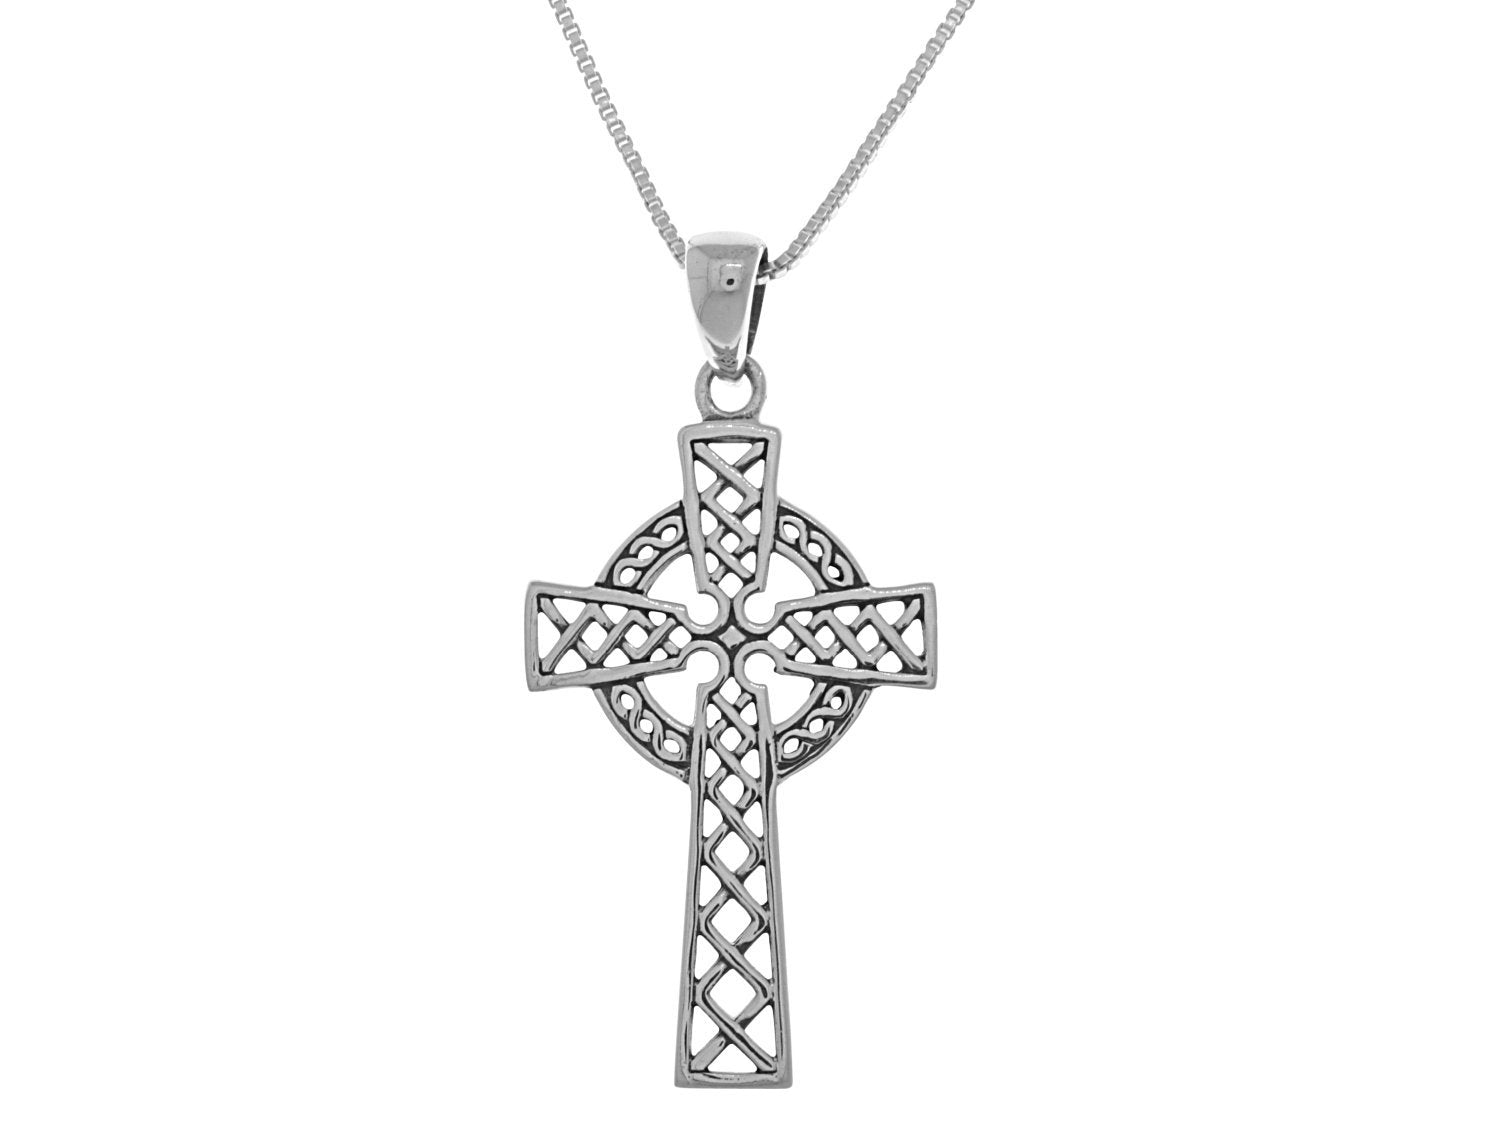 Jewelry Trends Irish Celtic Cross Religious Sterling Silver Pendant Necklace 18""